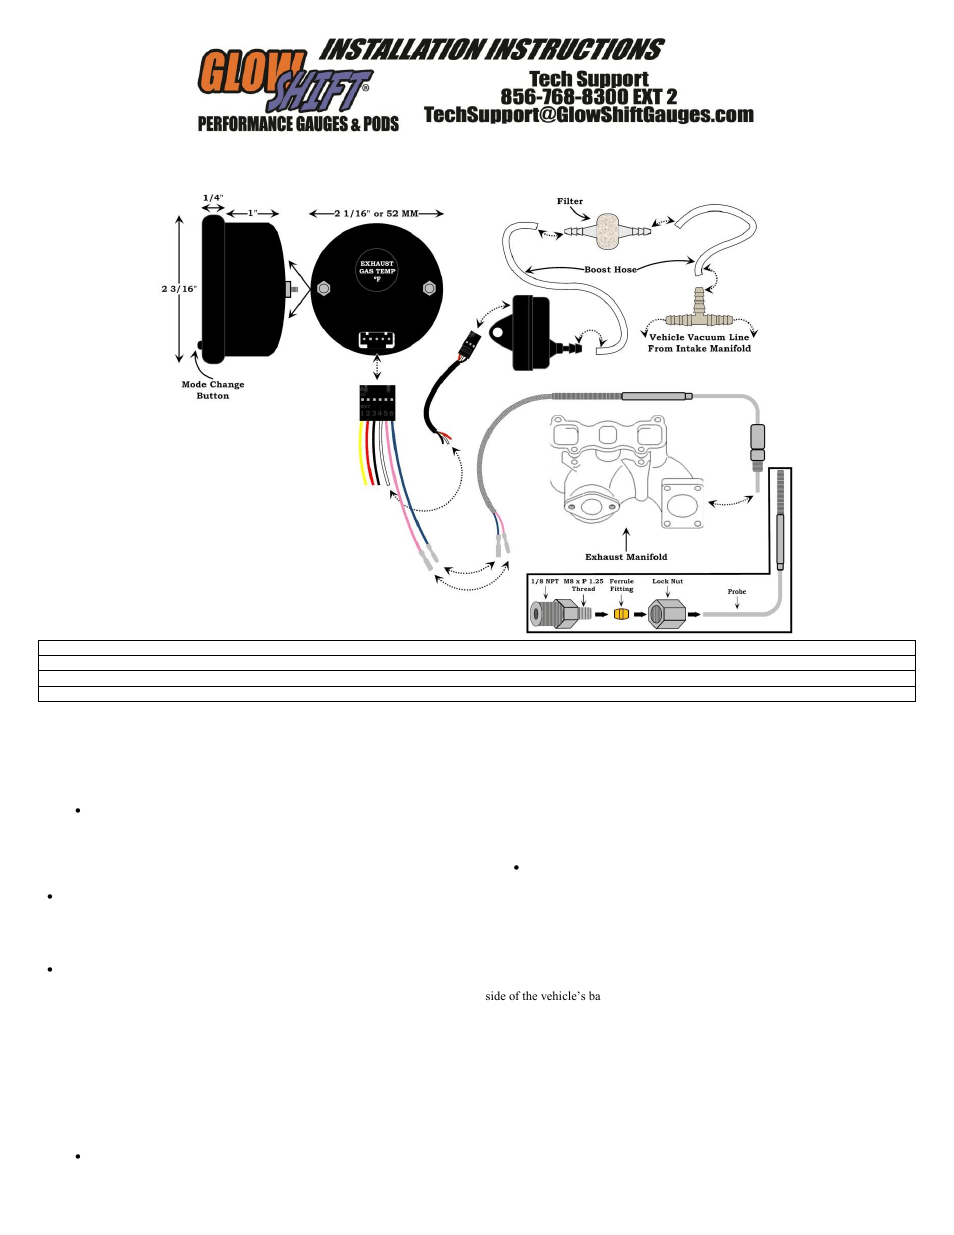 Glowshift Gauges Wiring Diagram : 31 Wiring Diagram Images